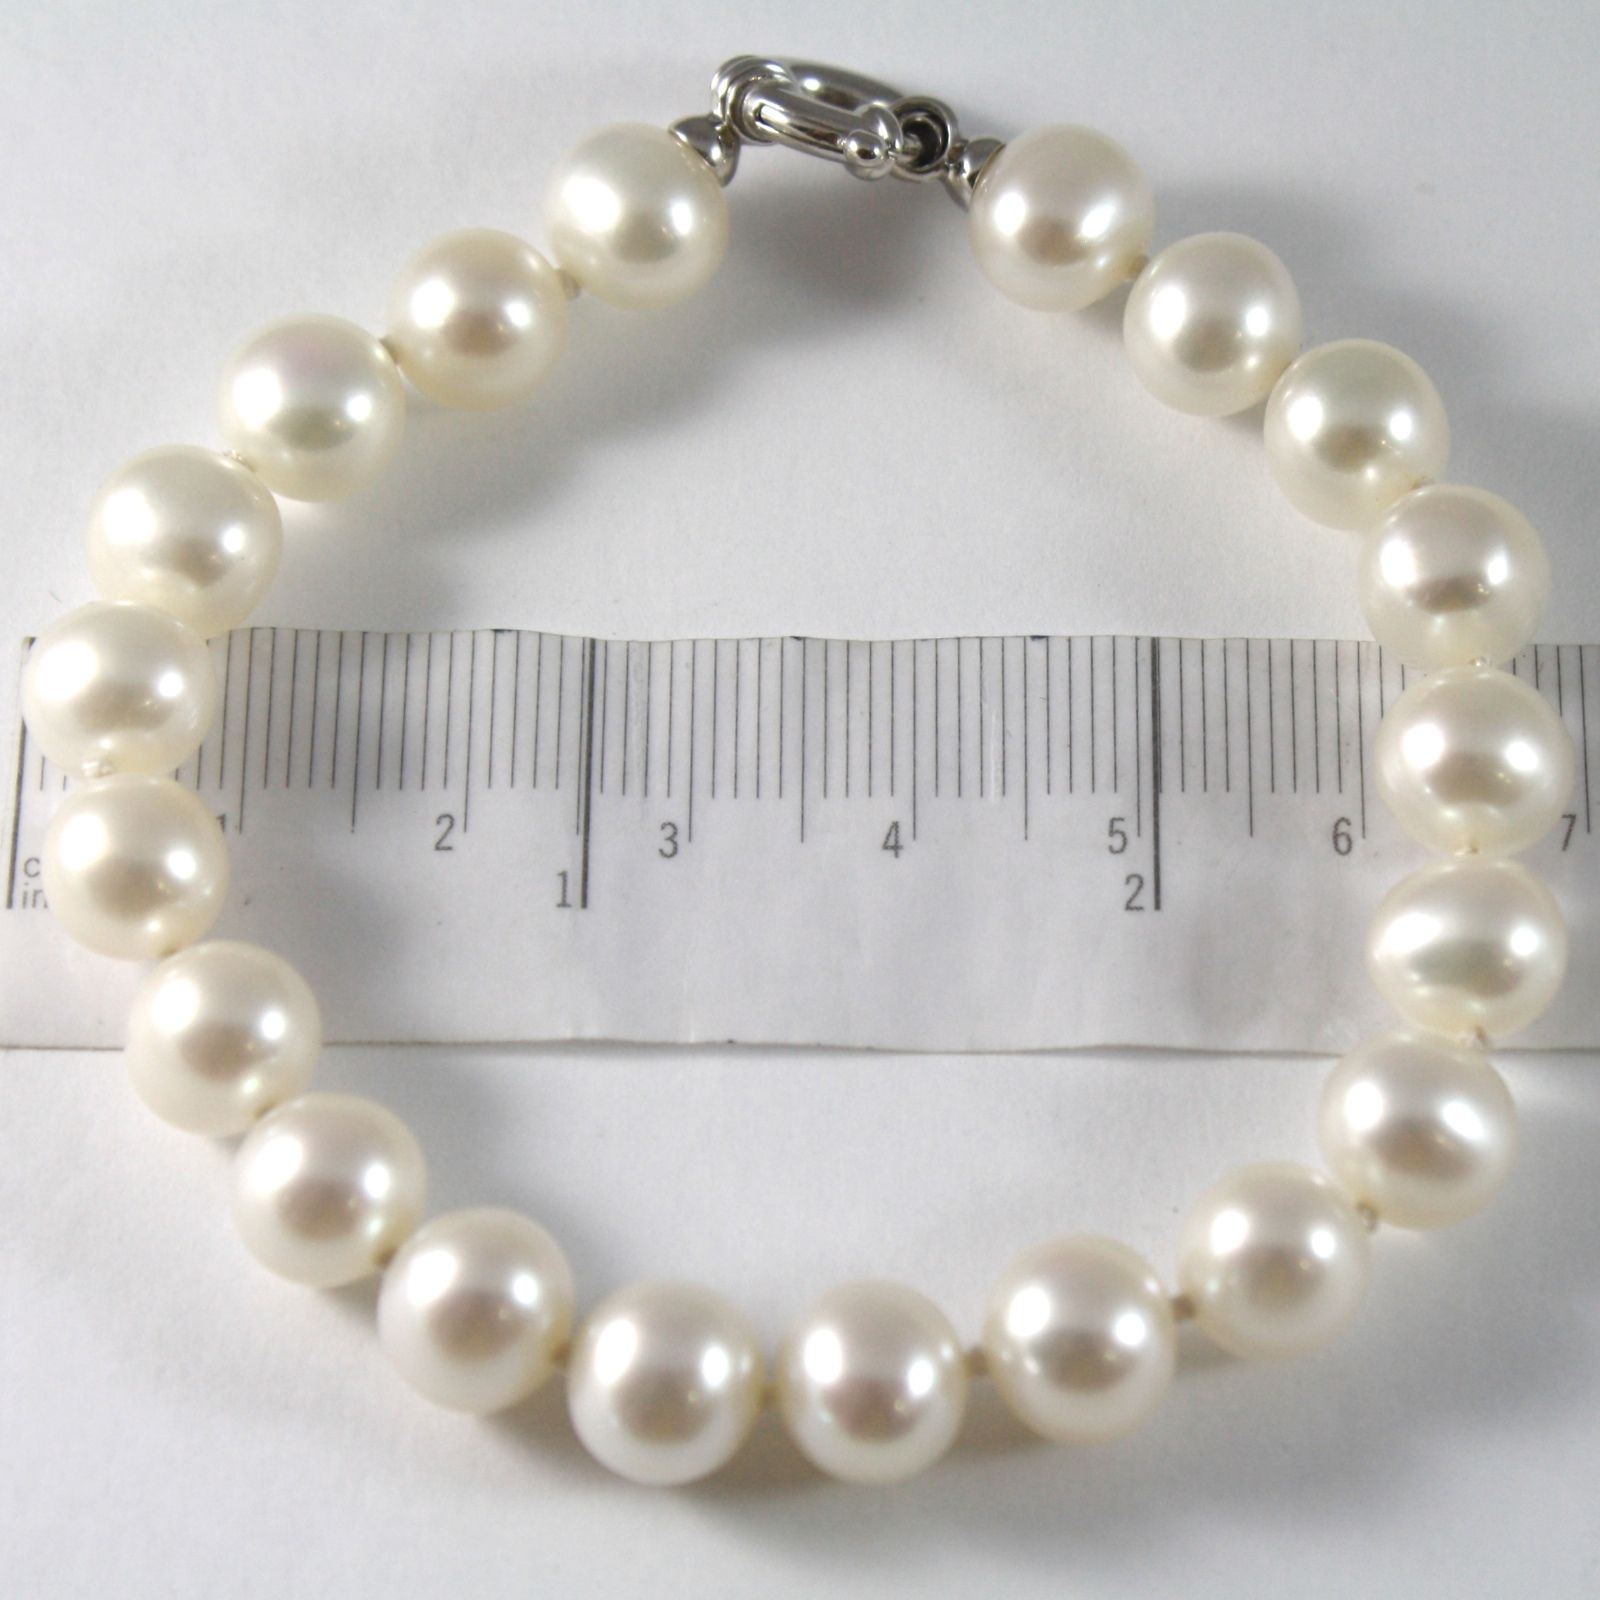 BRACELET OR BLANC 750 18K, FIL PERLES BLANCHES DIAMÈTRE 9 MM, LONG 19 CM